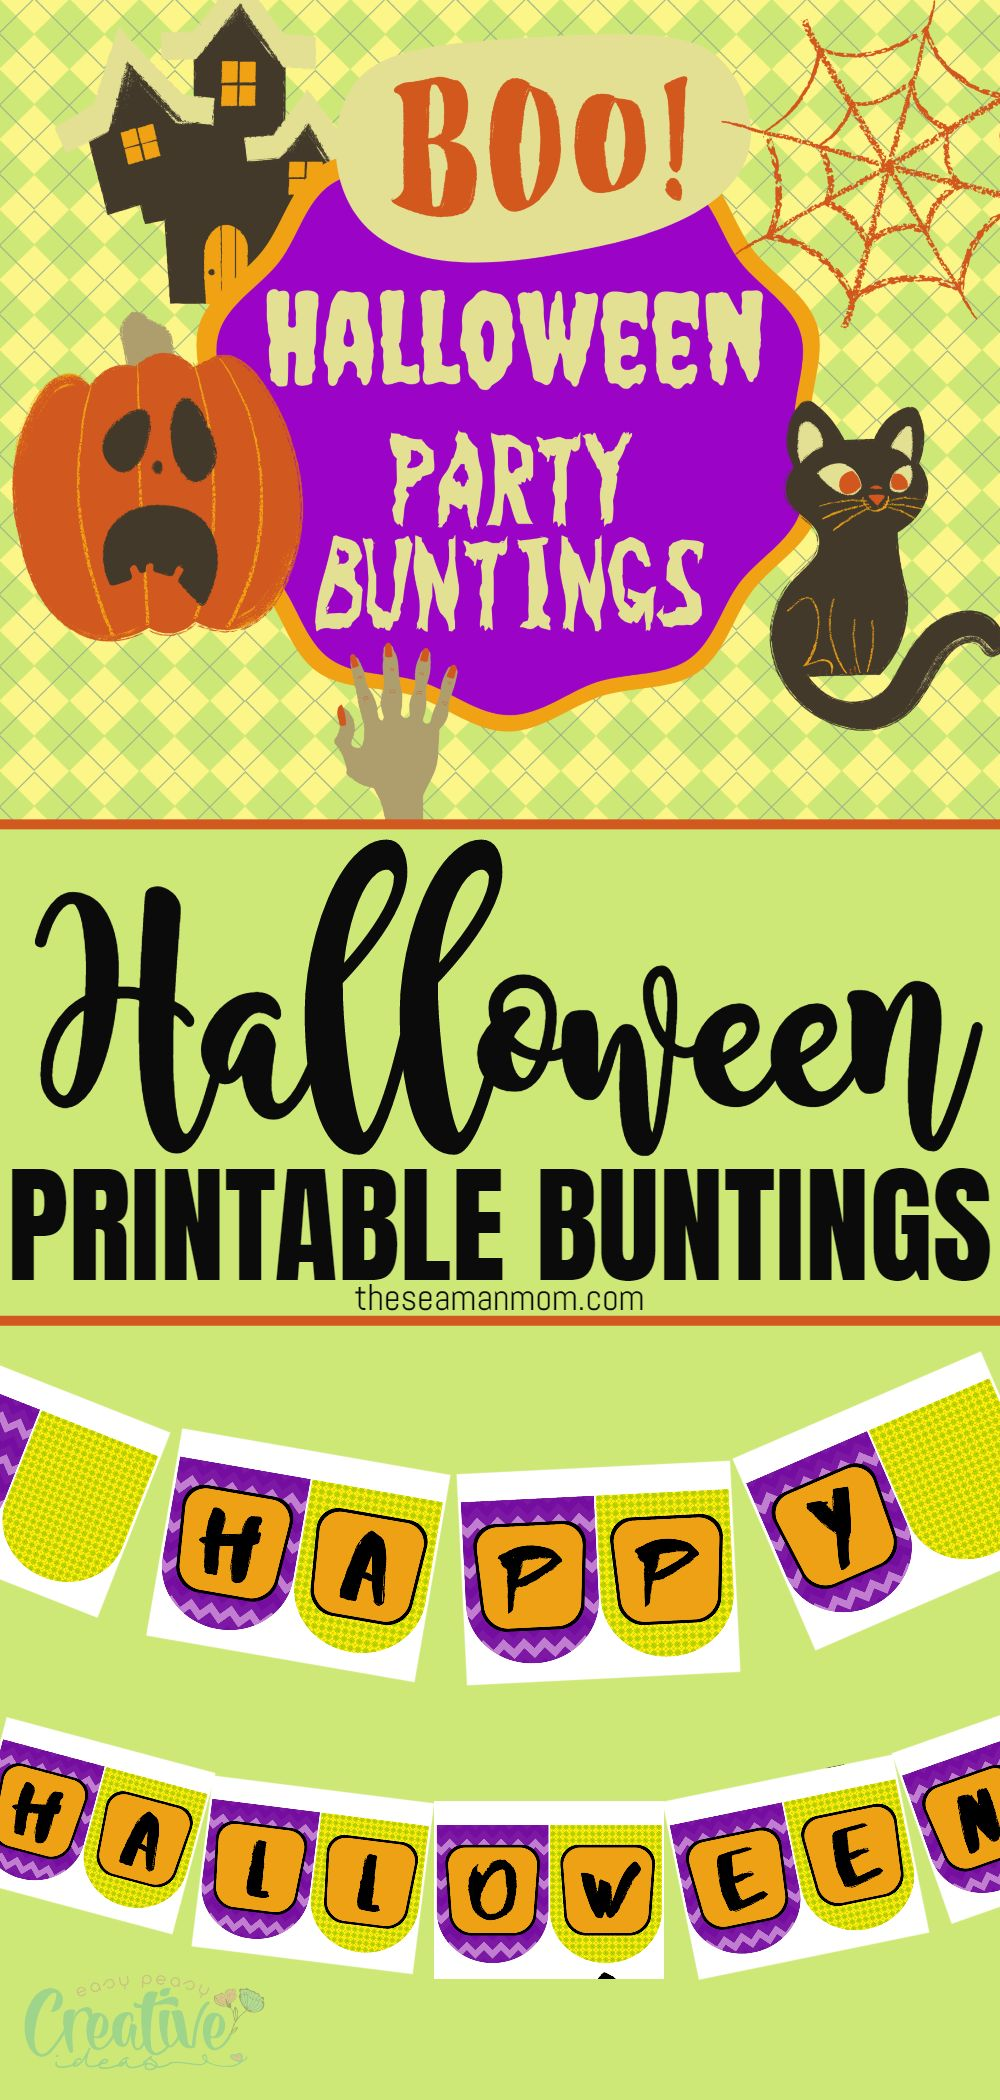 This adorable printable Happy Halloween banner is a fun craft project to put together as you prepare your home for the Halloween holiday! via @petroneagu